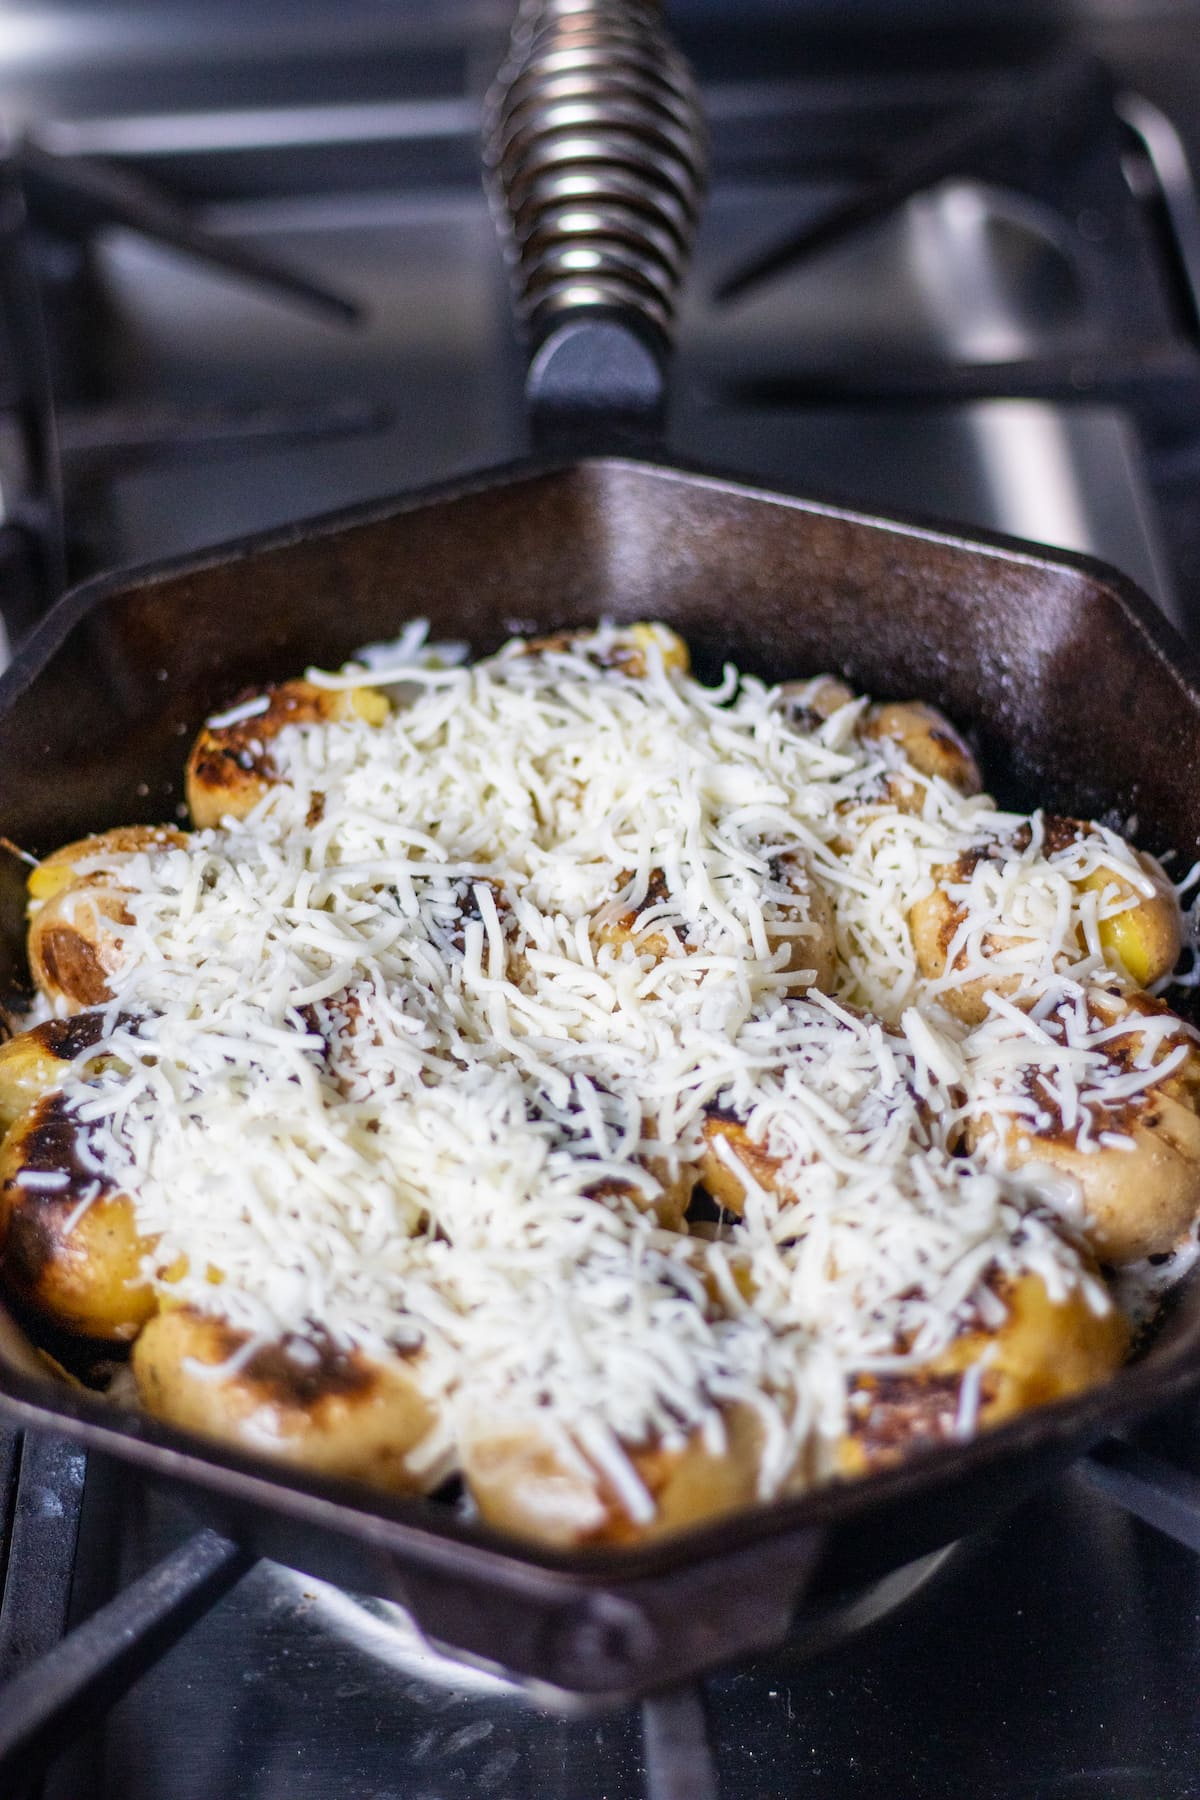 Cheese on potatoes in a skillet